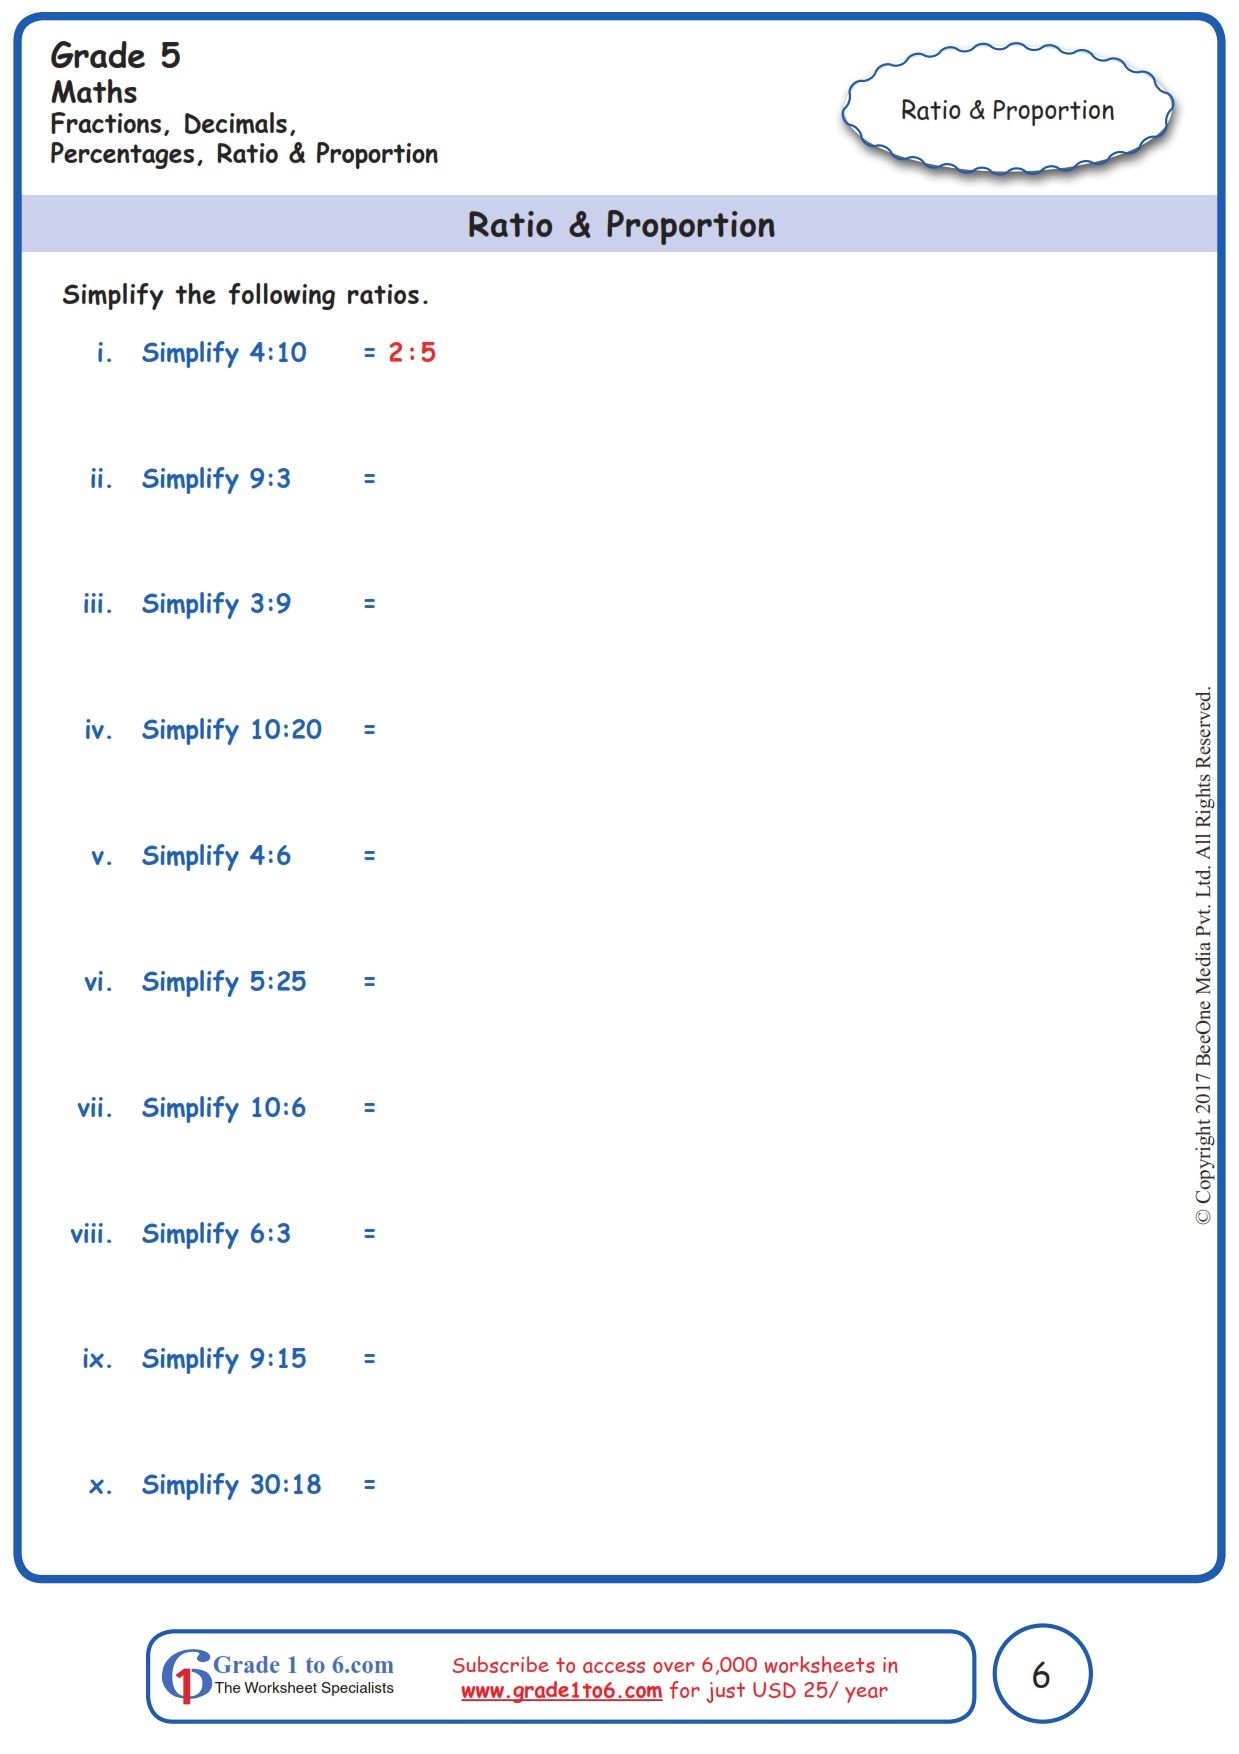 Worksheet Grade 5 Math Ratio Amp Proportion In